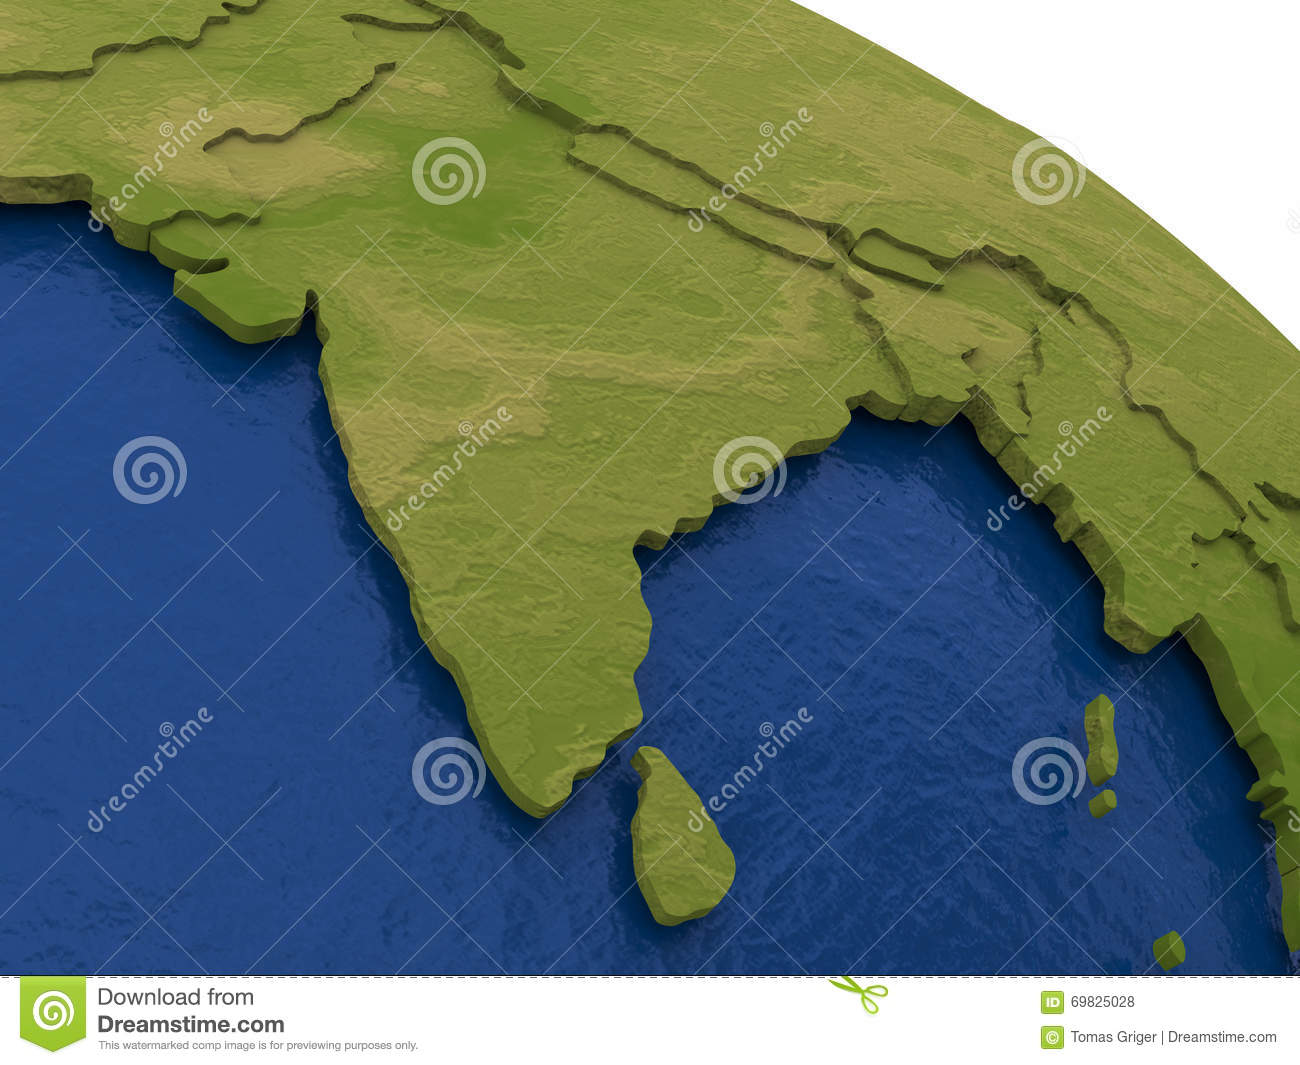 Indian Subcontinent Physical Map Of Only on physical map of indian ocean, physical map of himachal pradesh, physical map of india and china, physical map of mekong, physical map of brahmaputra river, physical map of malay peninsula, physical map of continent, physical map of bay of bengal, physical map of laccadive sea, physical map of papua new guinea, physical map of godavari river, physical map of western united states, physical map of varanasi, physical map of united arab emirates, physical map of south asia, physical map of yellow river, physical map of pacific islands, physical map of balkans, physical map of western ghats,